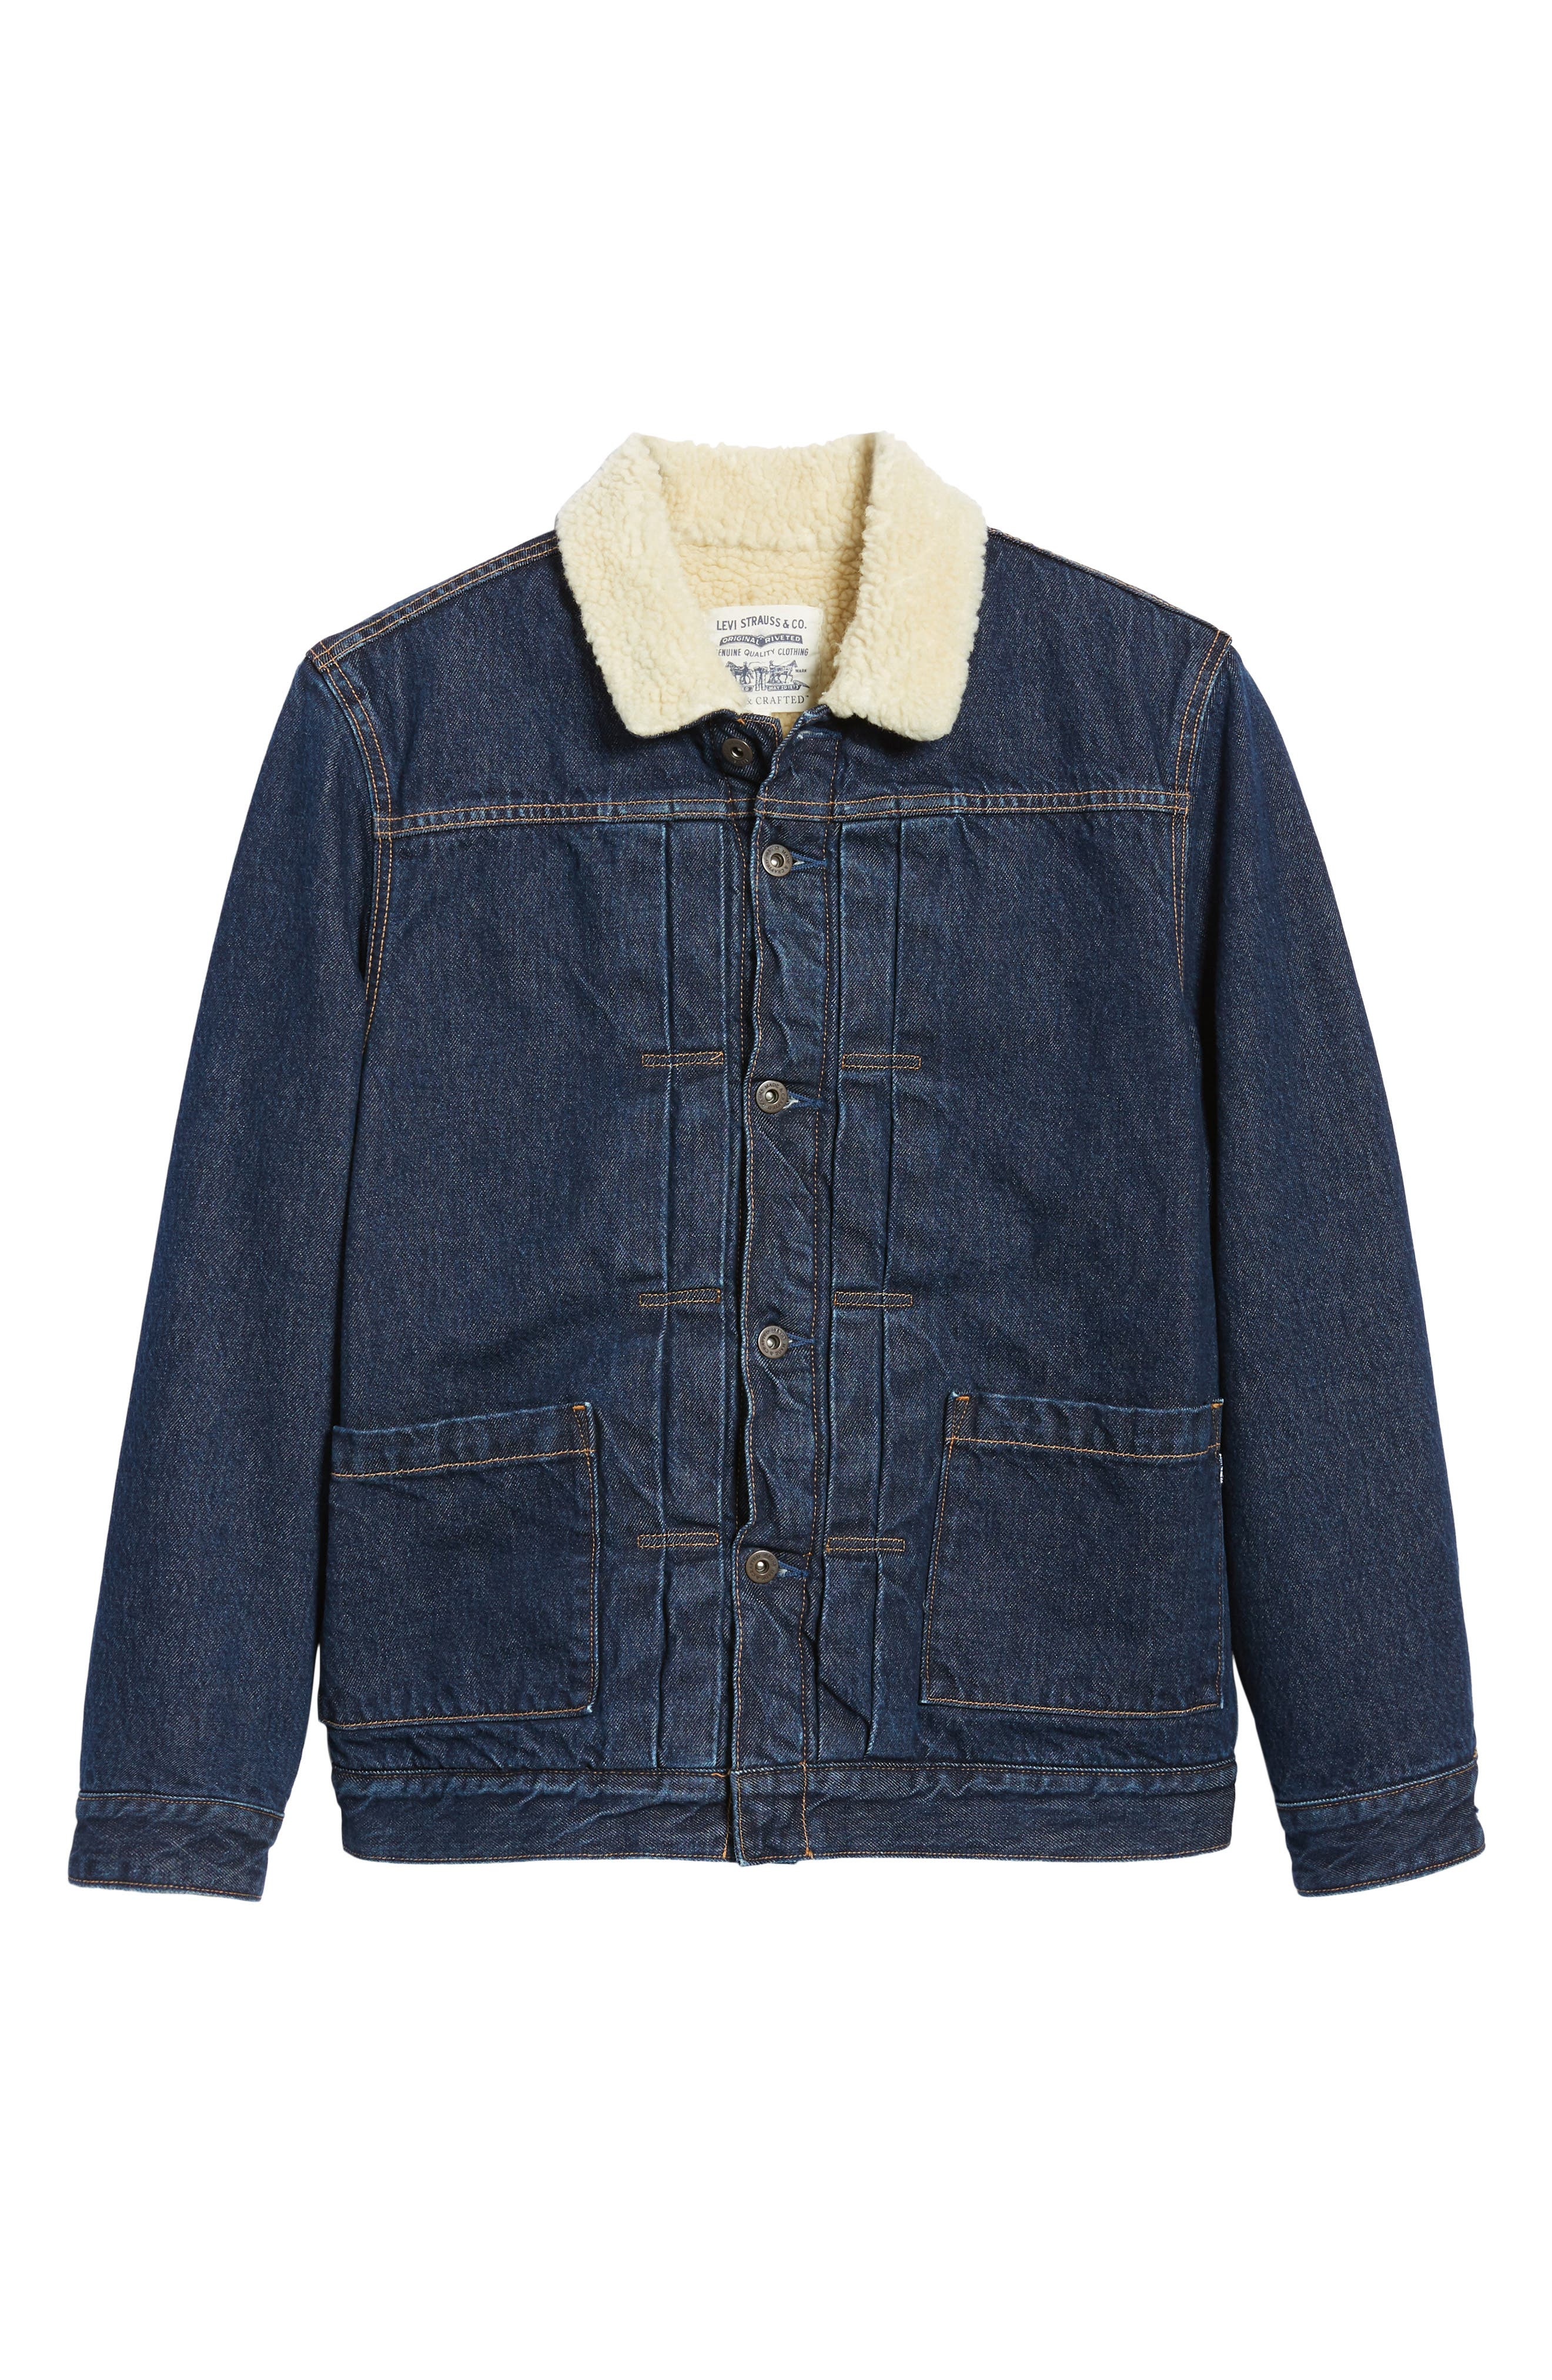 Levi's Made & Crafted<sup>™</sup> Faux Shearling Lined Denim Jacket,                             Alternate thumbnail 6, color,                             CANYON